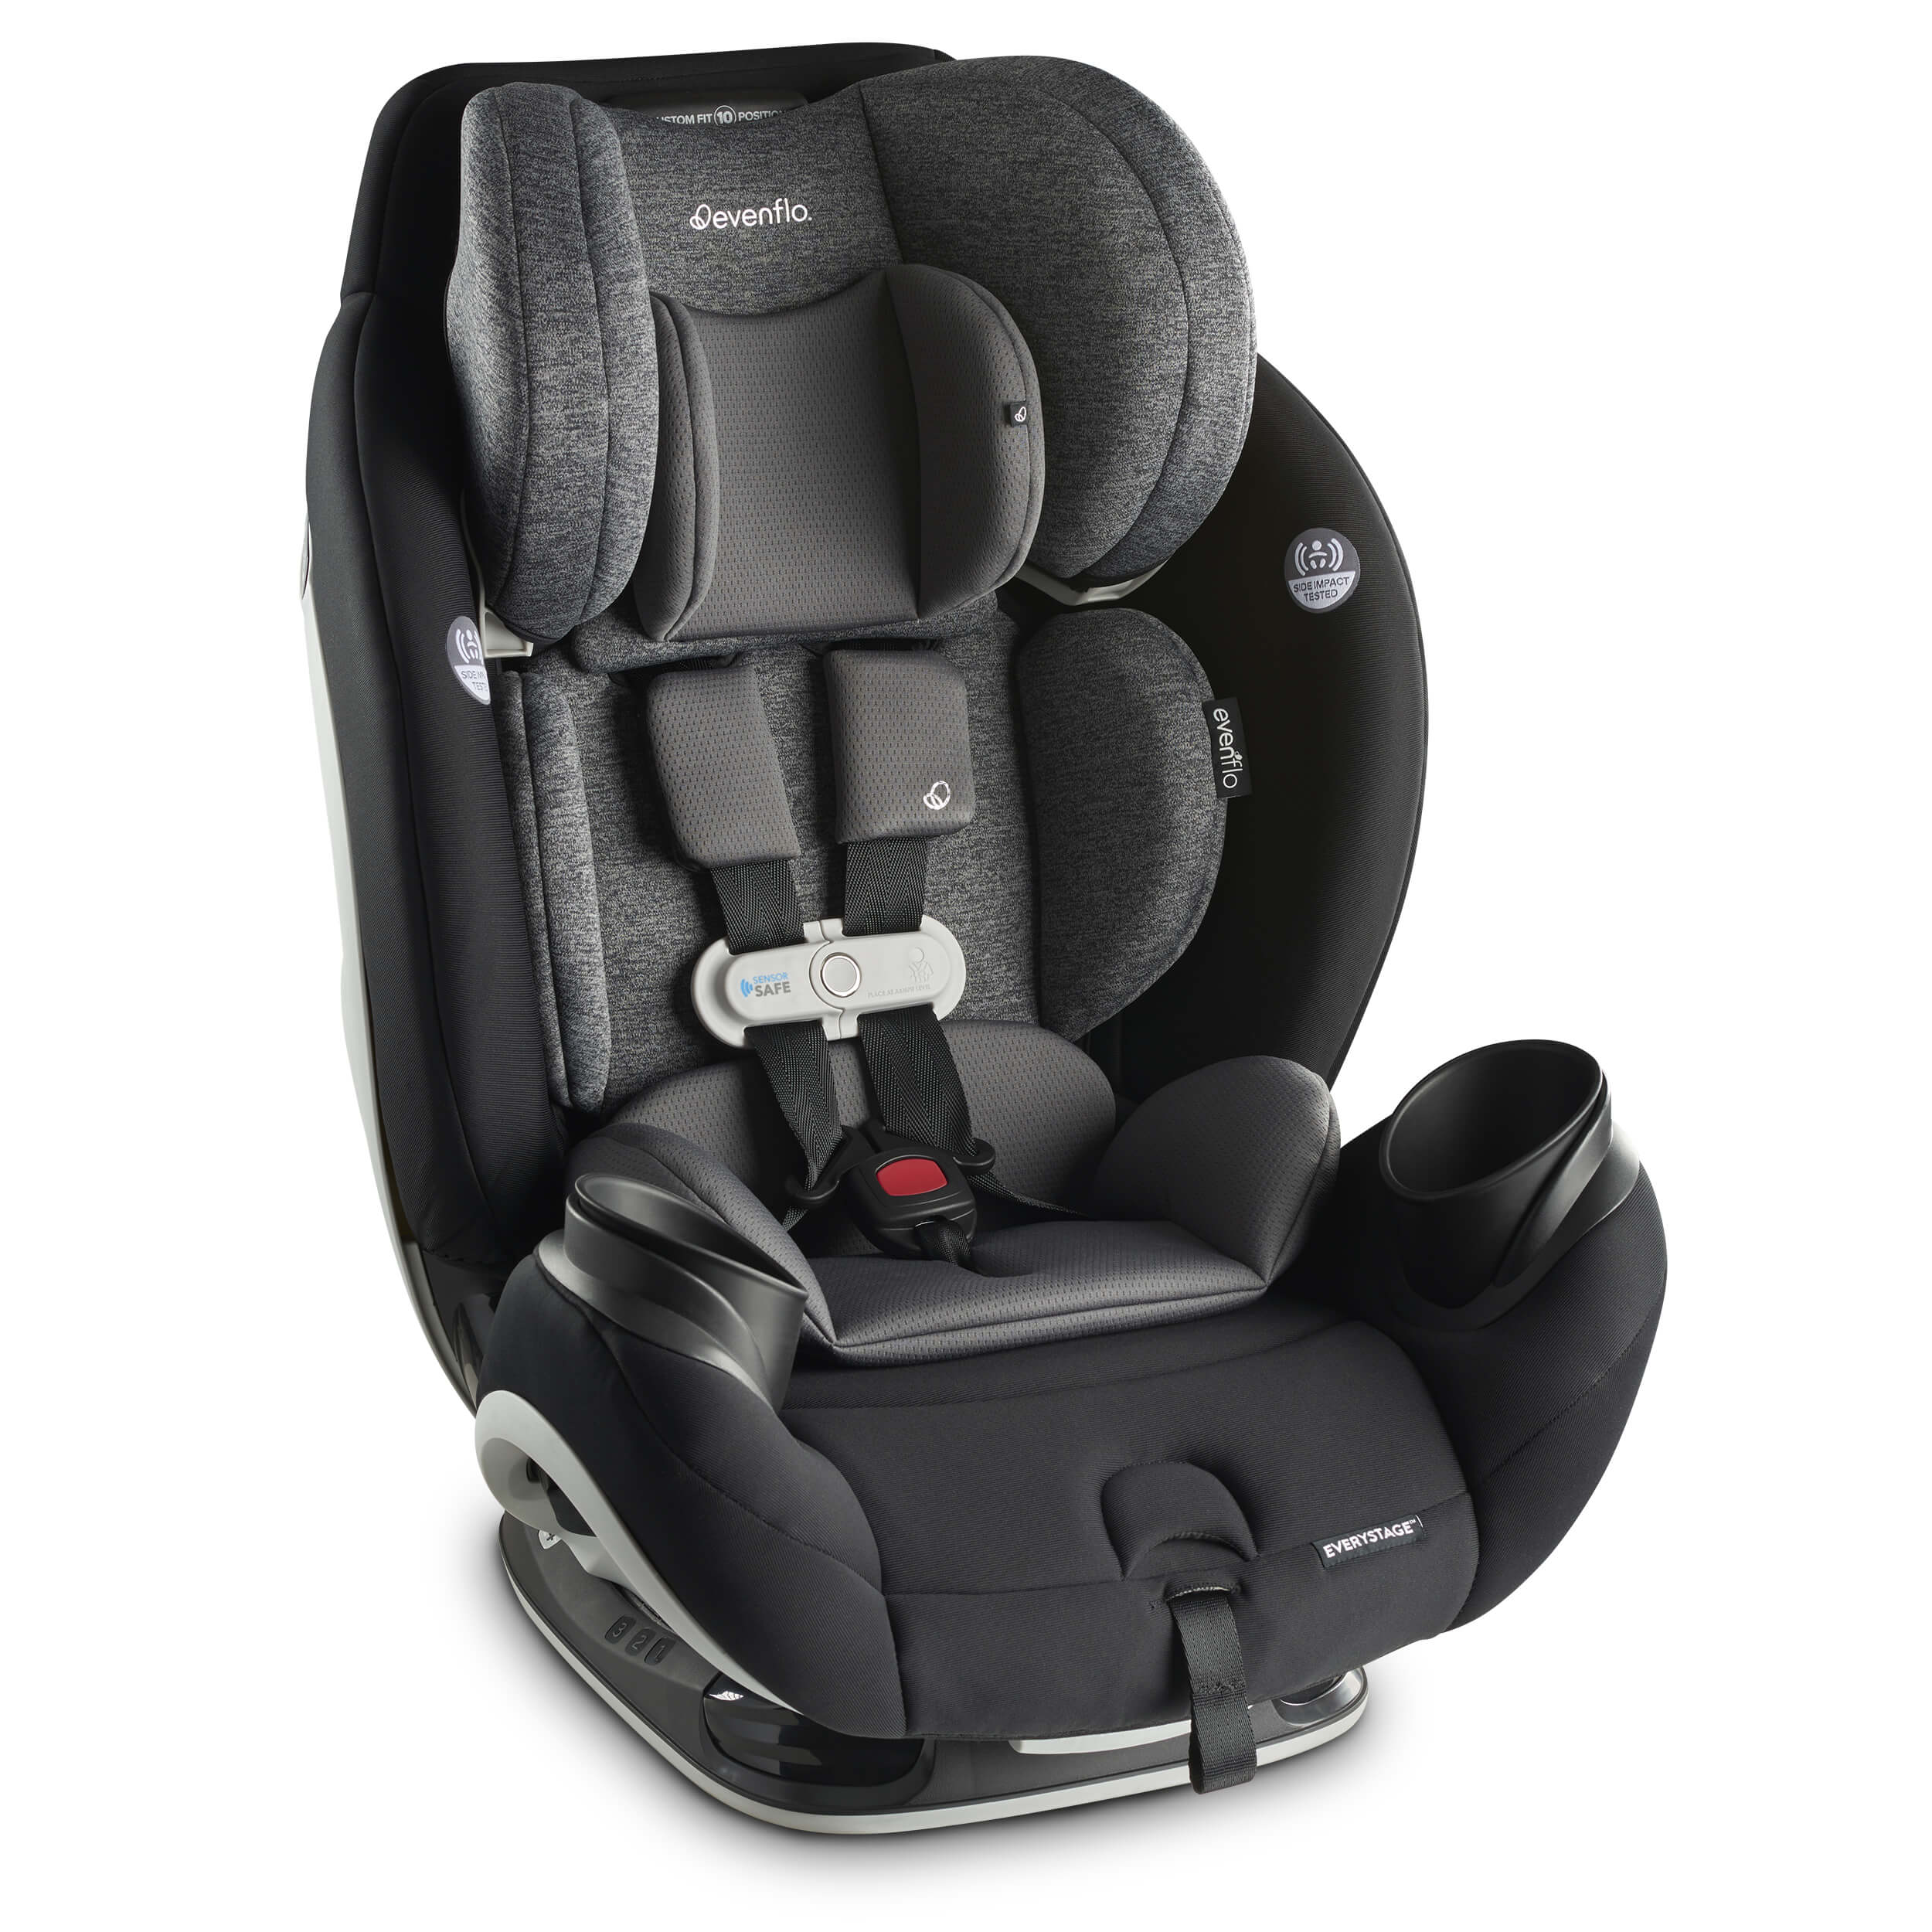 Best Tech Car Seat - Evenflo Gold SensorSafe EveryStage Smart All-in-One Convertible Car Seat